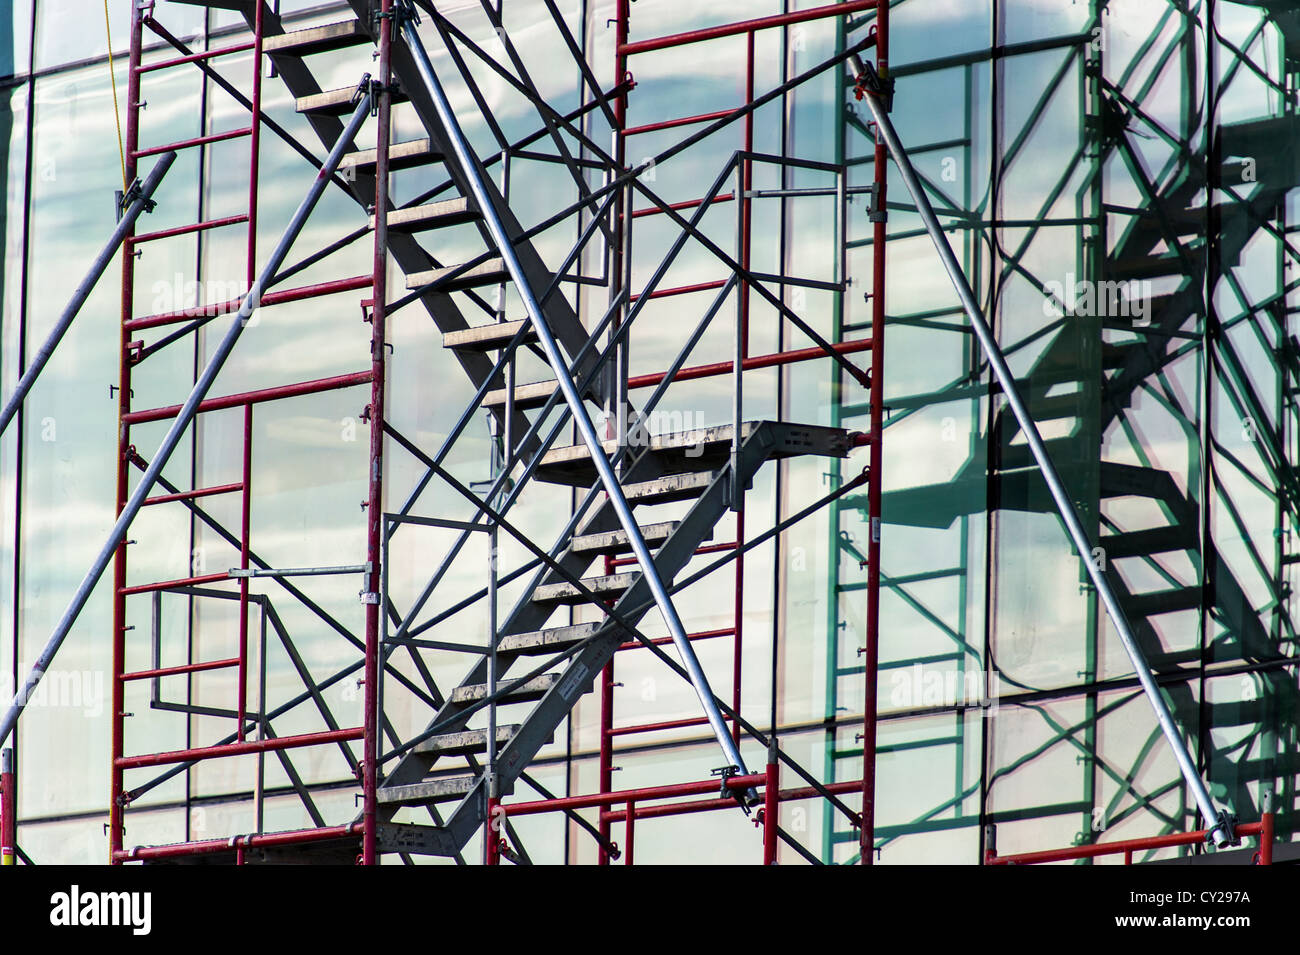 Scaffolding reflected on a new glass building - Stock Image